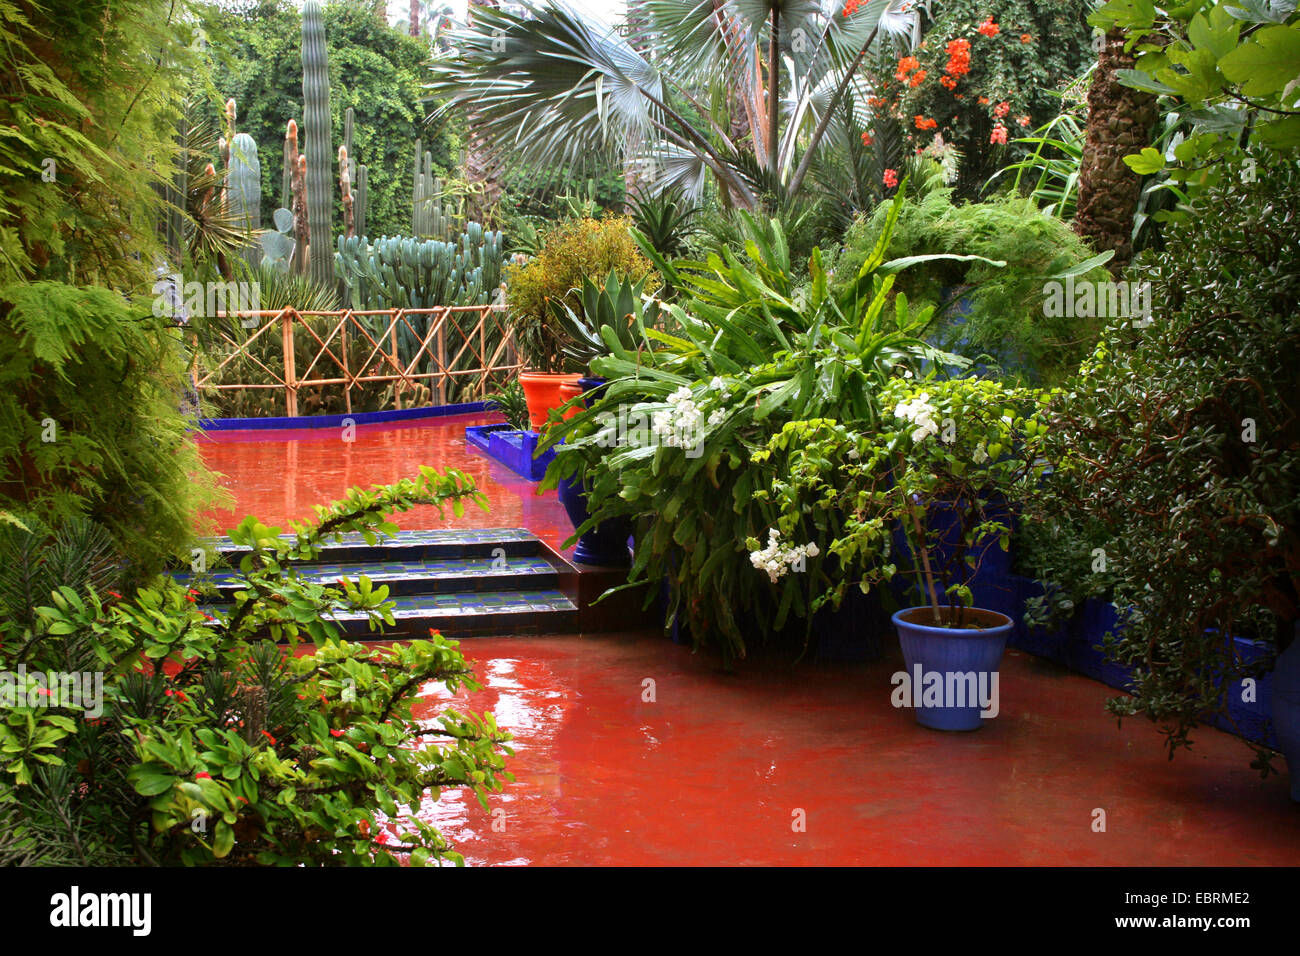 Jardin majorelle botanical garden by yves saint laurent for Jardin yves saint laurent